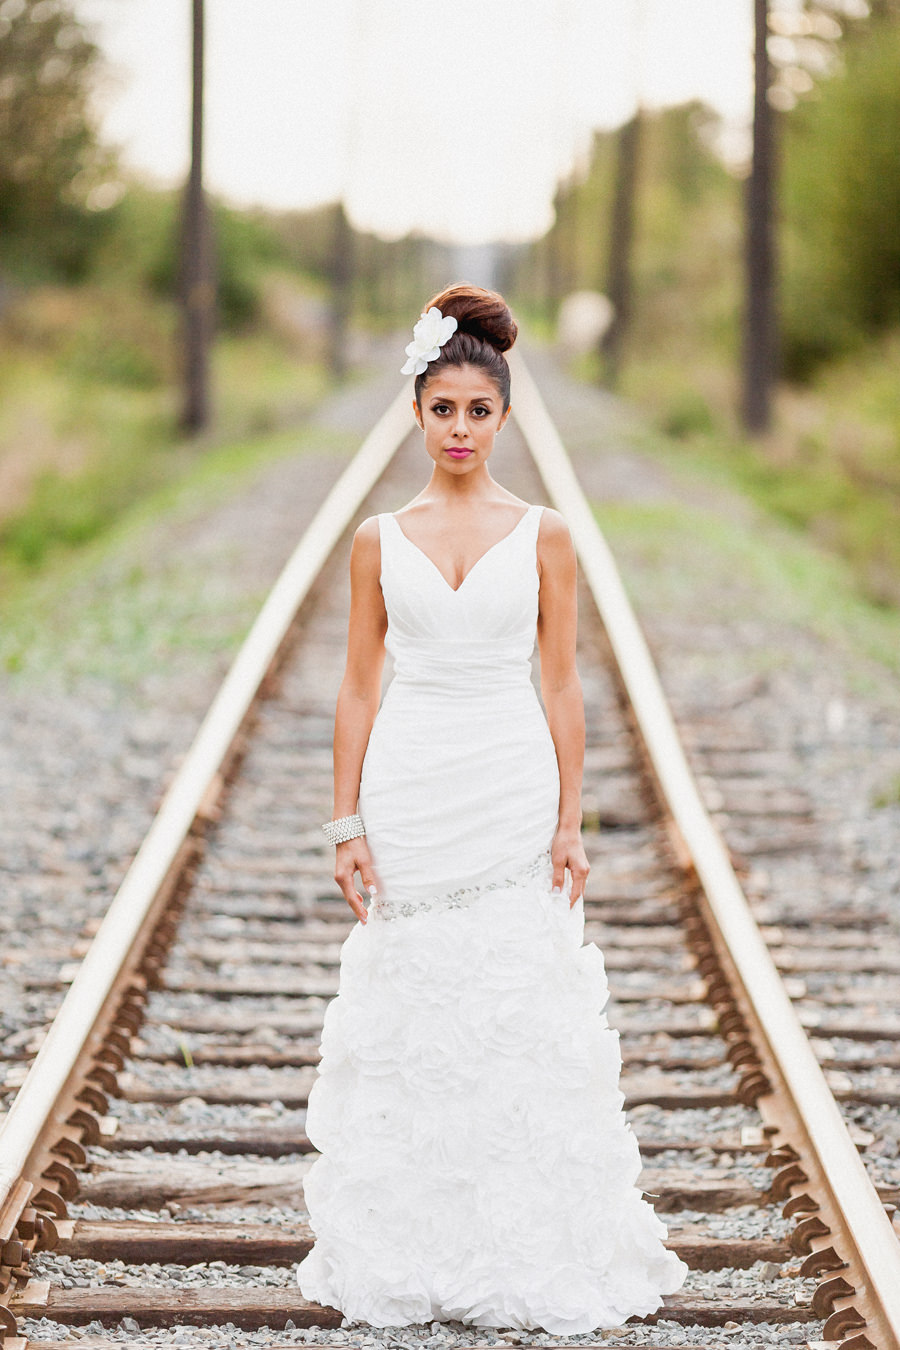 Riverway GolfCourse Bridal Portrait on train tracks